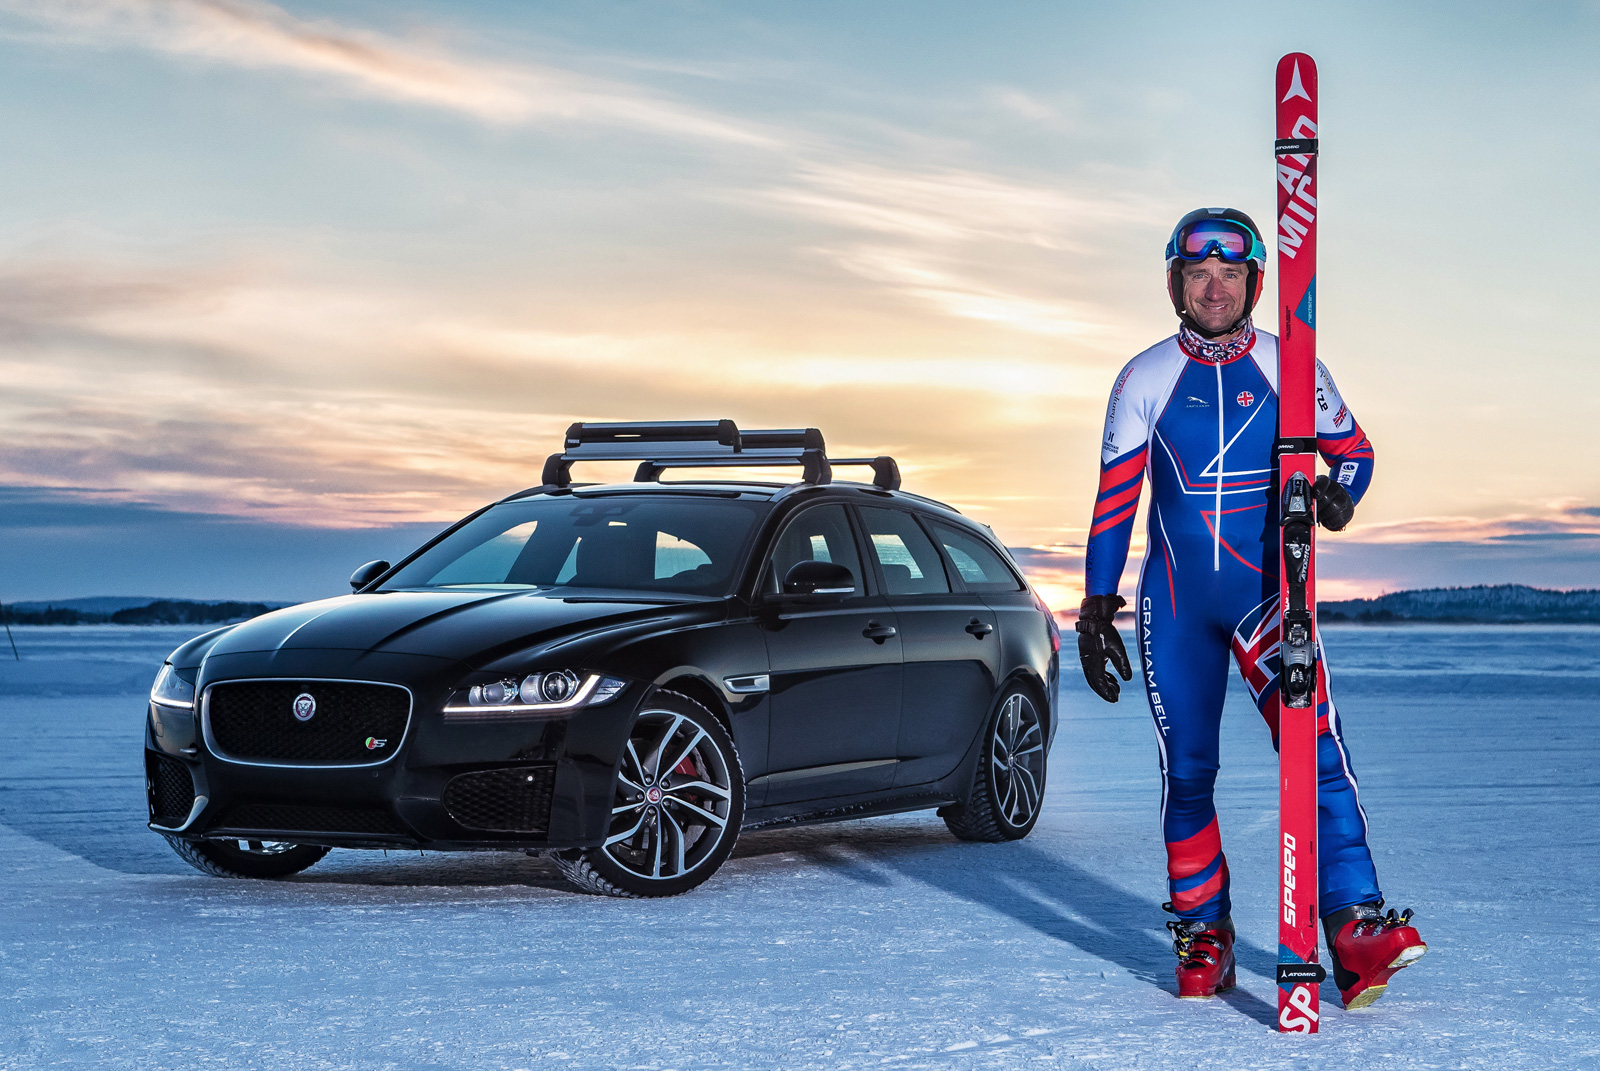 Olympic skier and Jaguar hit 117 miles per hour to smash towing world record